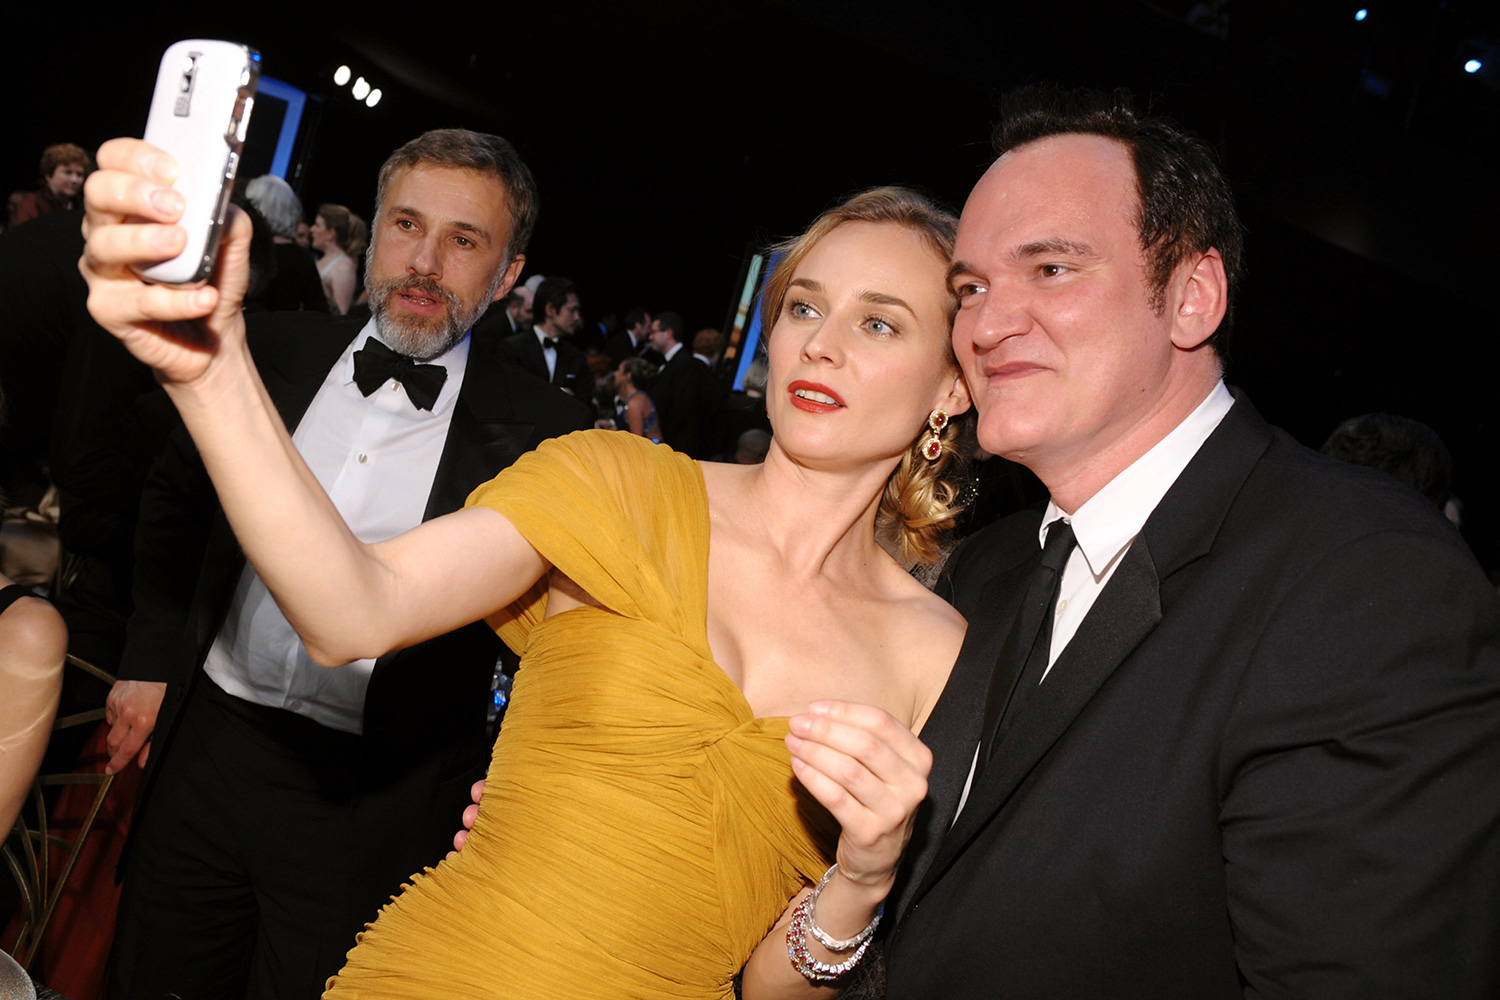 Christoph Waltz and Diane Kruger and director Quentin Tarantino attend the TNT/TBS broadcast of the 16th Annual Screen Actors Guild Awards at the Shrine Auditorium on January 23, 2010 in Los Angeles, California